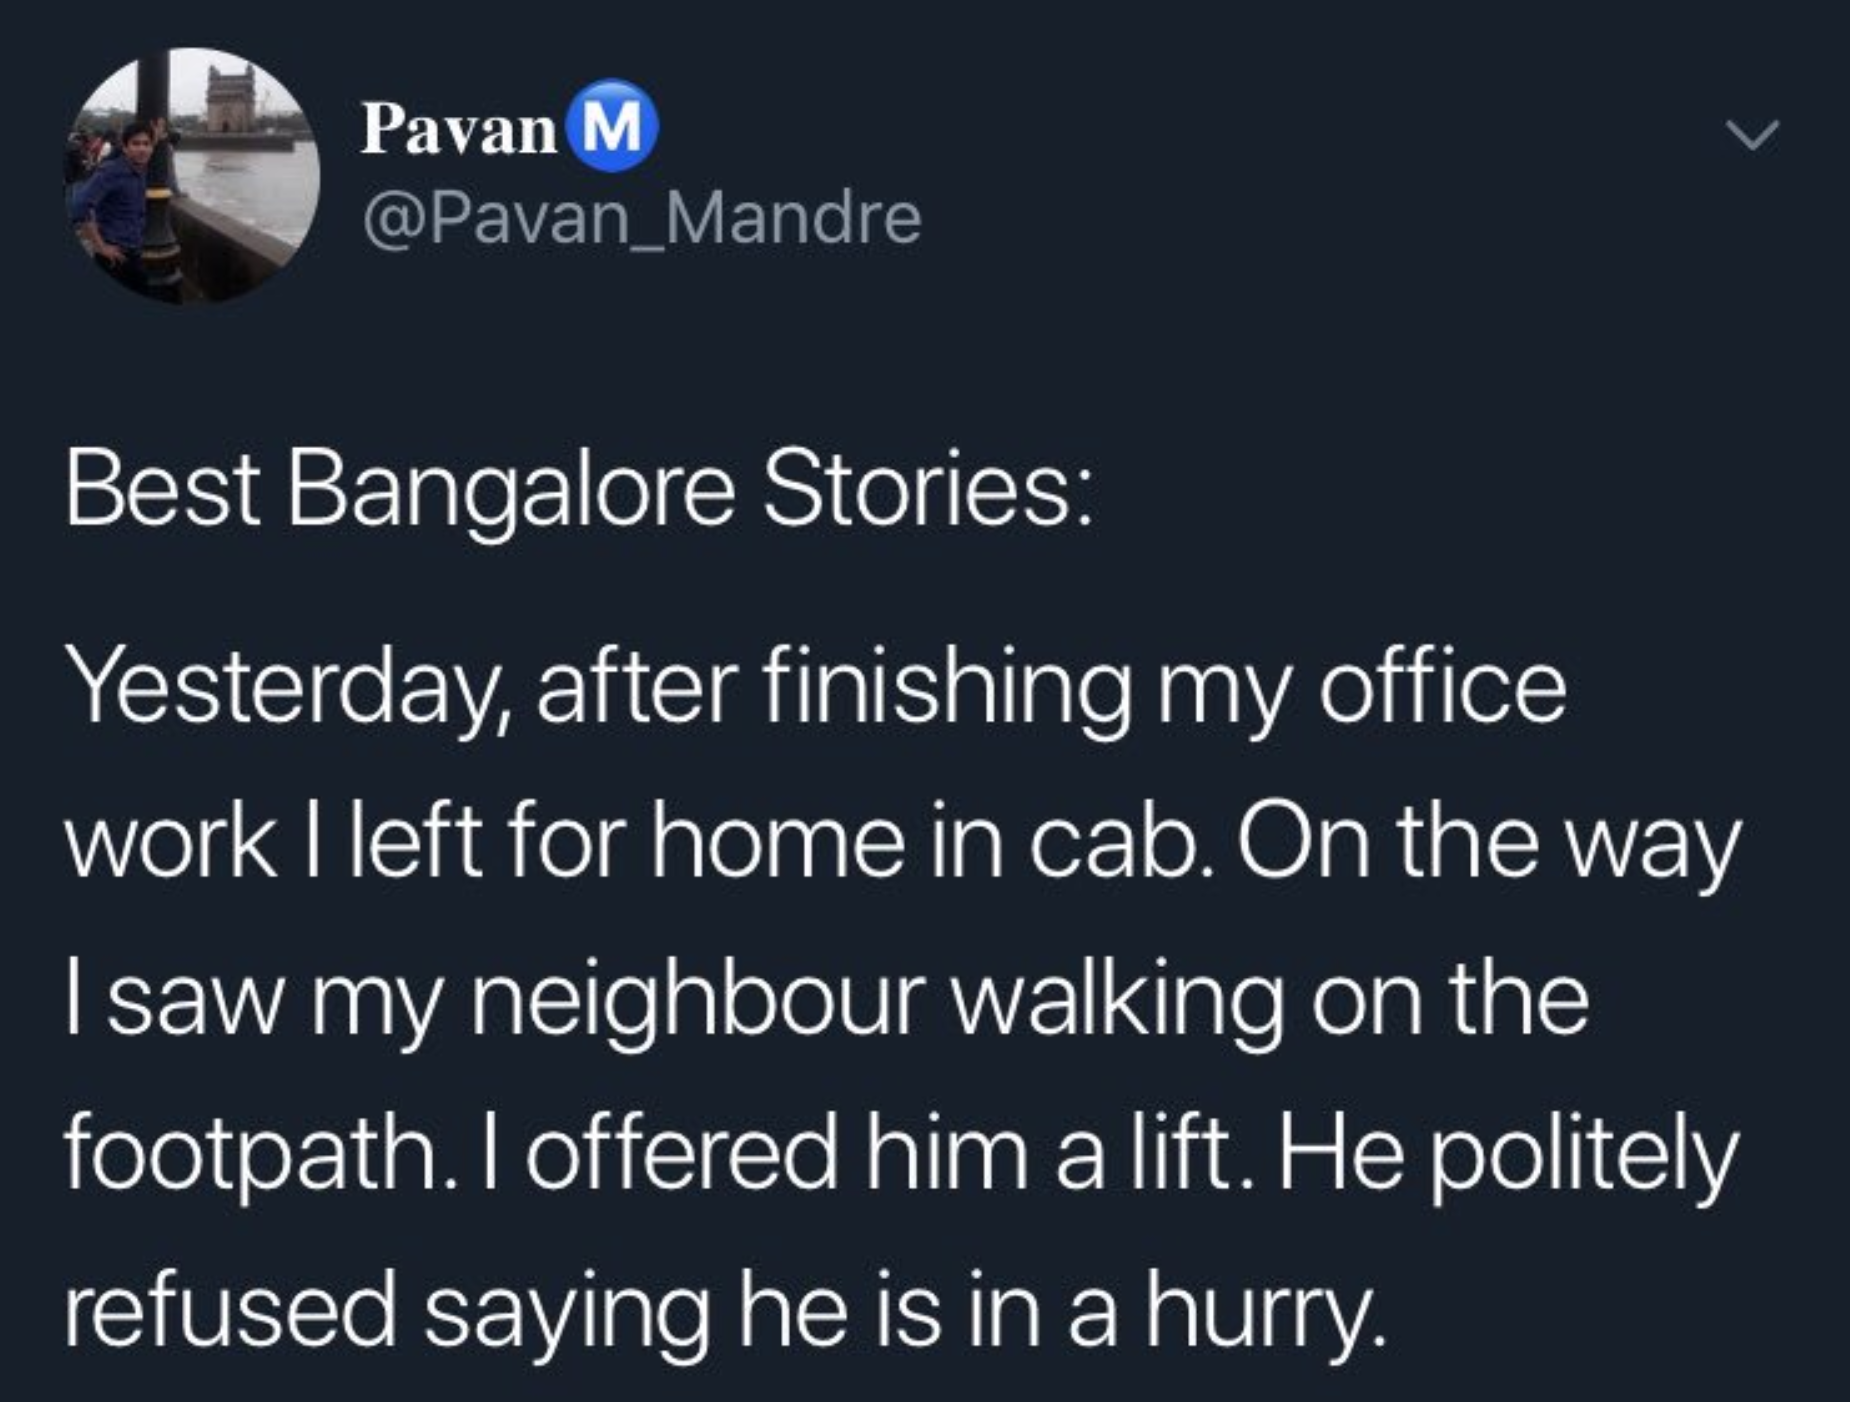 """Tweet: """"Best Bangalore Stories: Yesterday after finishing my office work I left for home in cab. On the way I saw my neighbour walking on the footpath. I offered him a lift. He politely refused saying hes in a hurry."""""""